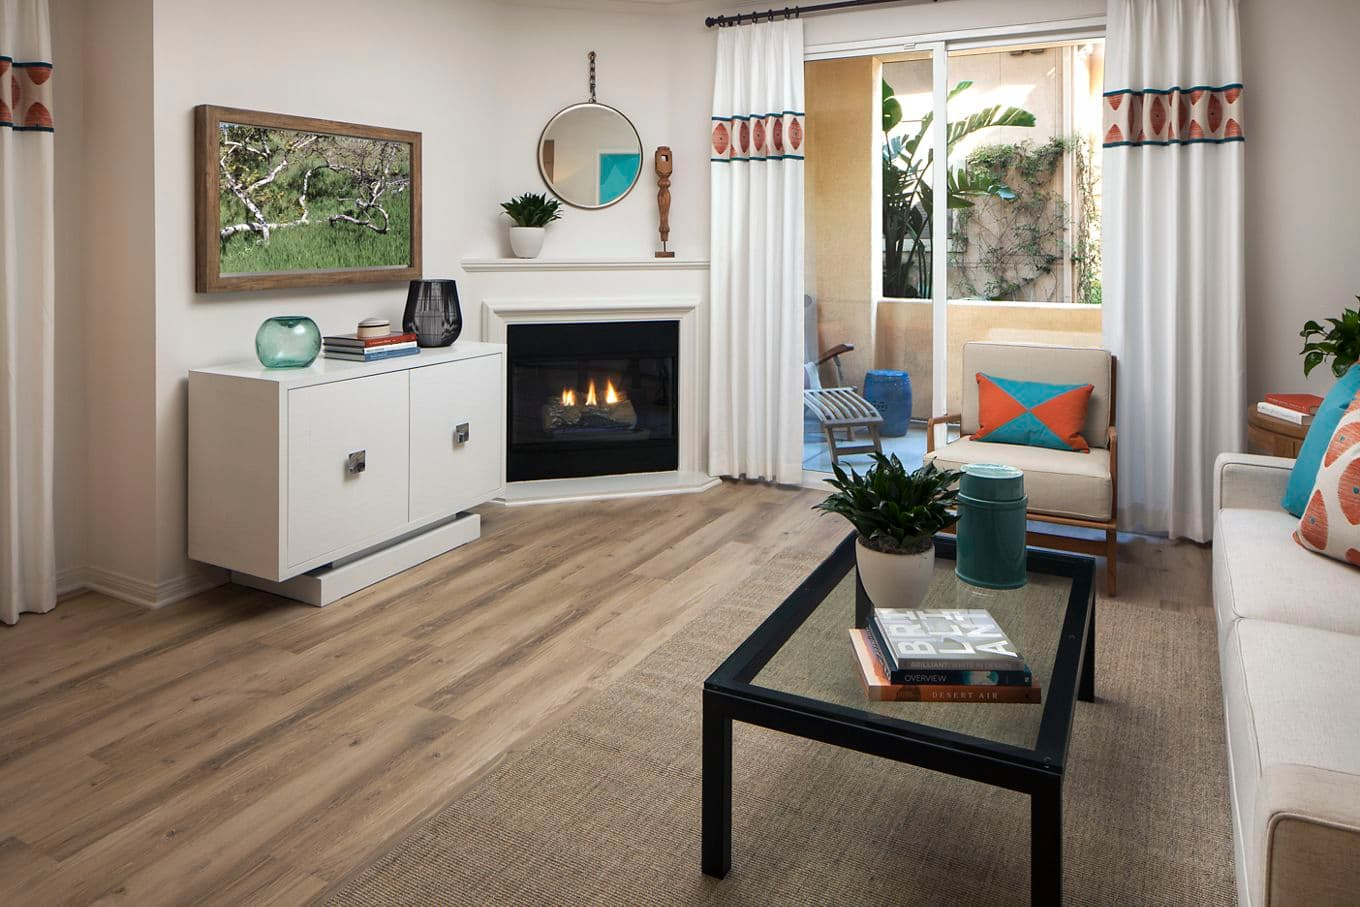 Interior view of living room at Somerset Apartment Homes in Irvine, CA.